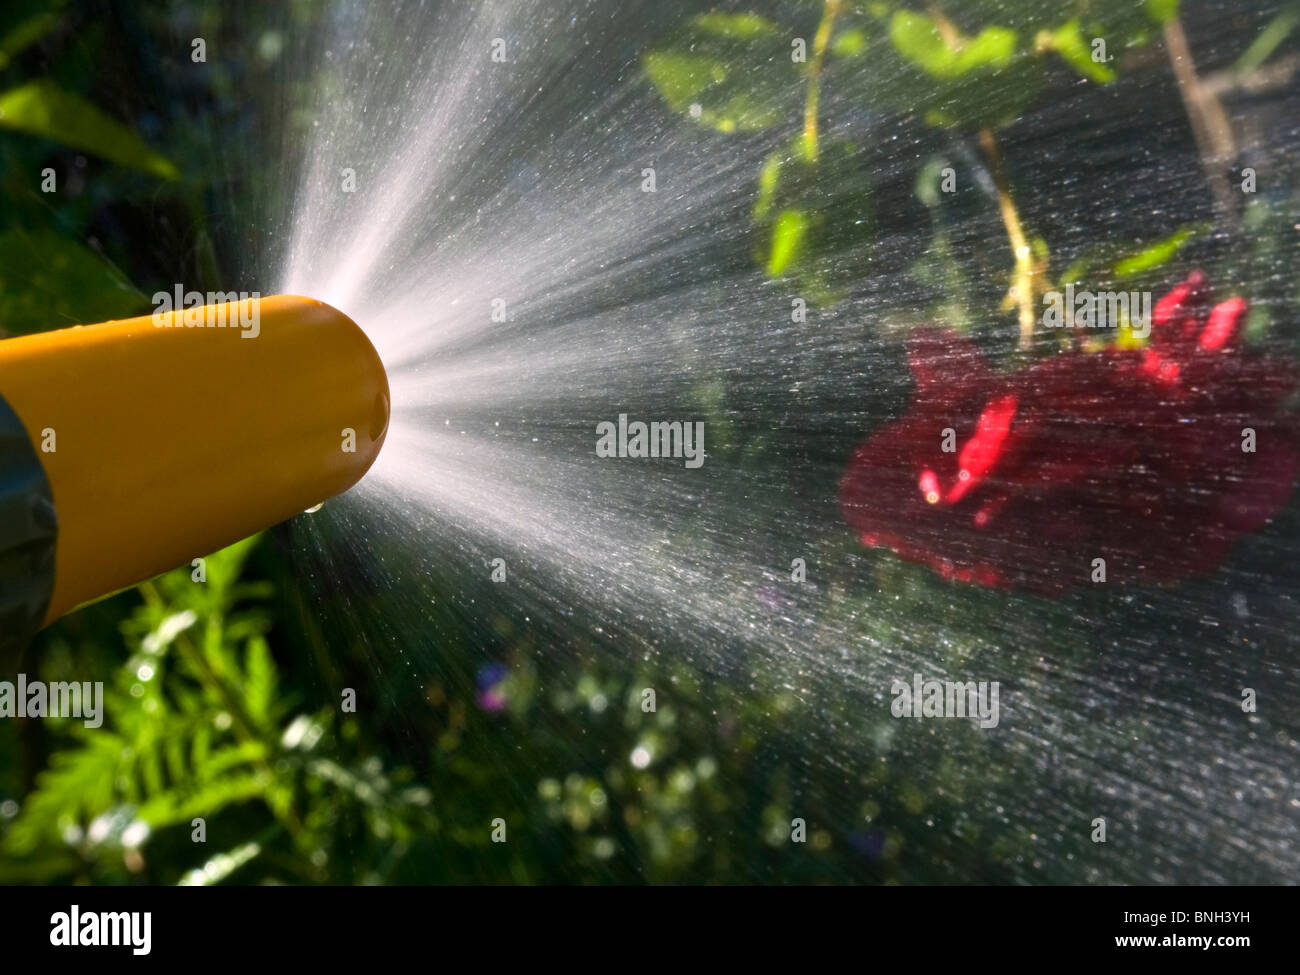 garden hose spraying water images amp pictures   becuo